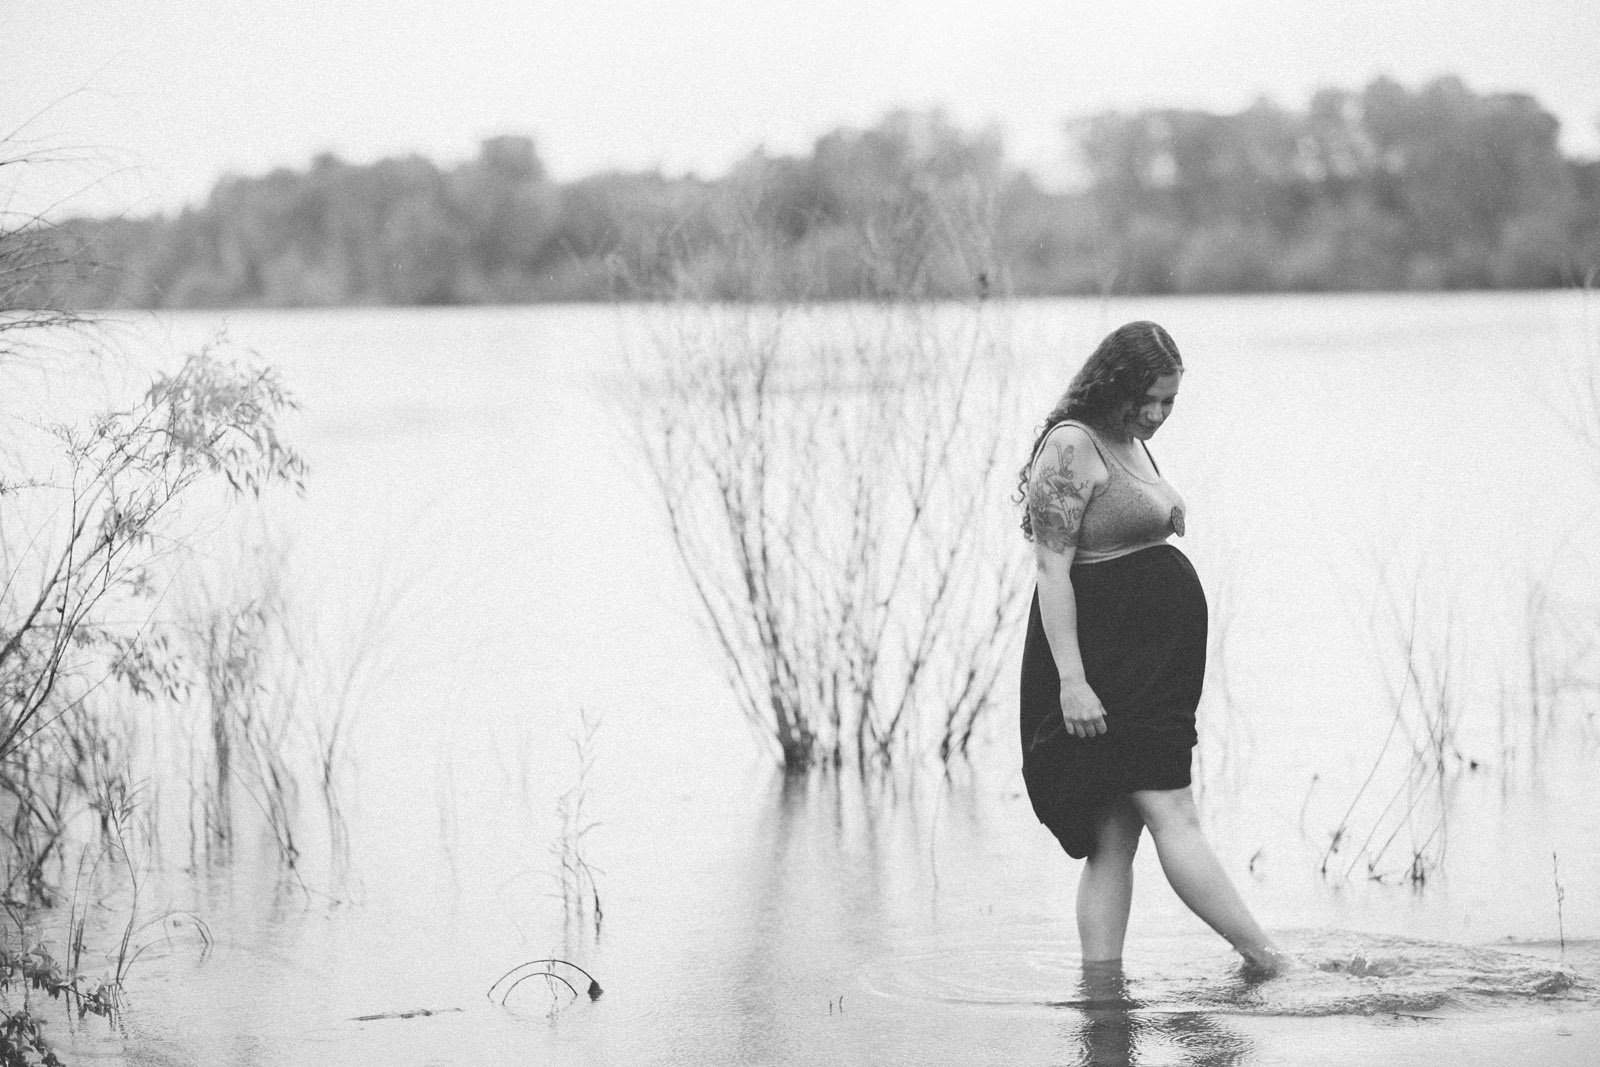 006-maternity-water-lake-branch-tree-summer-rain-woman-women-mom